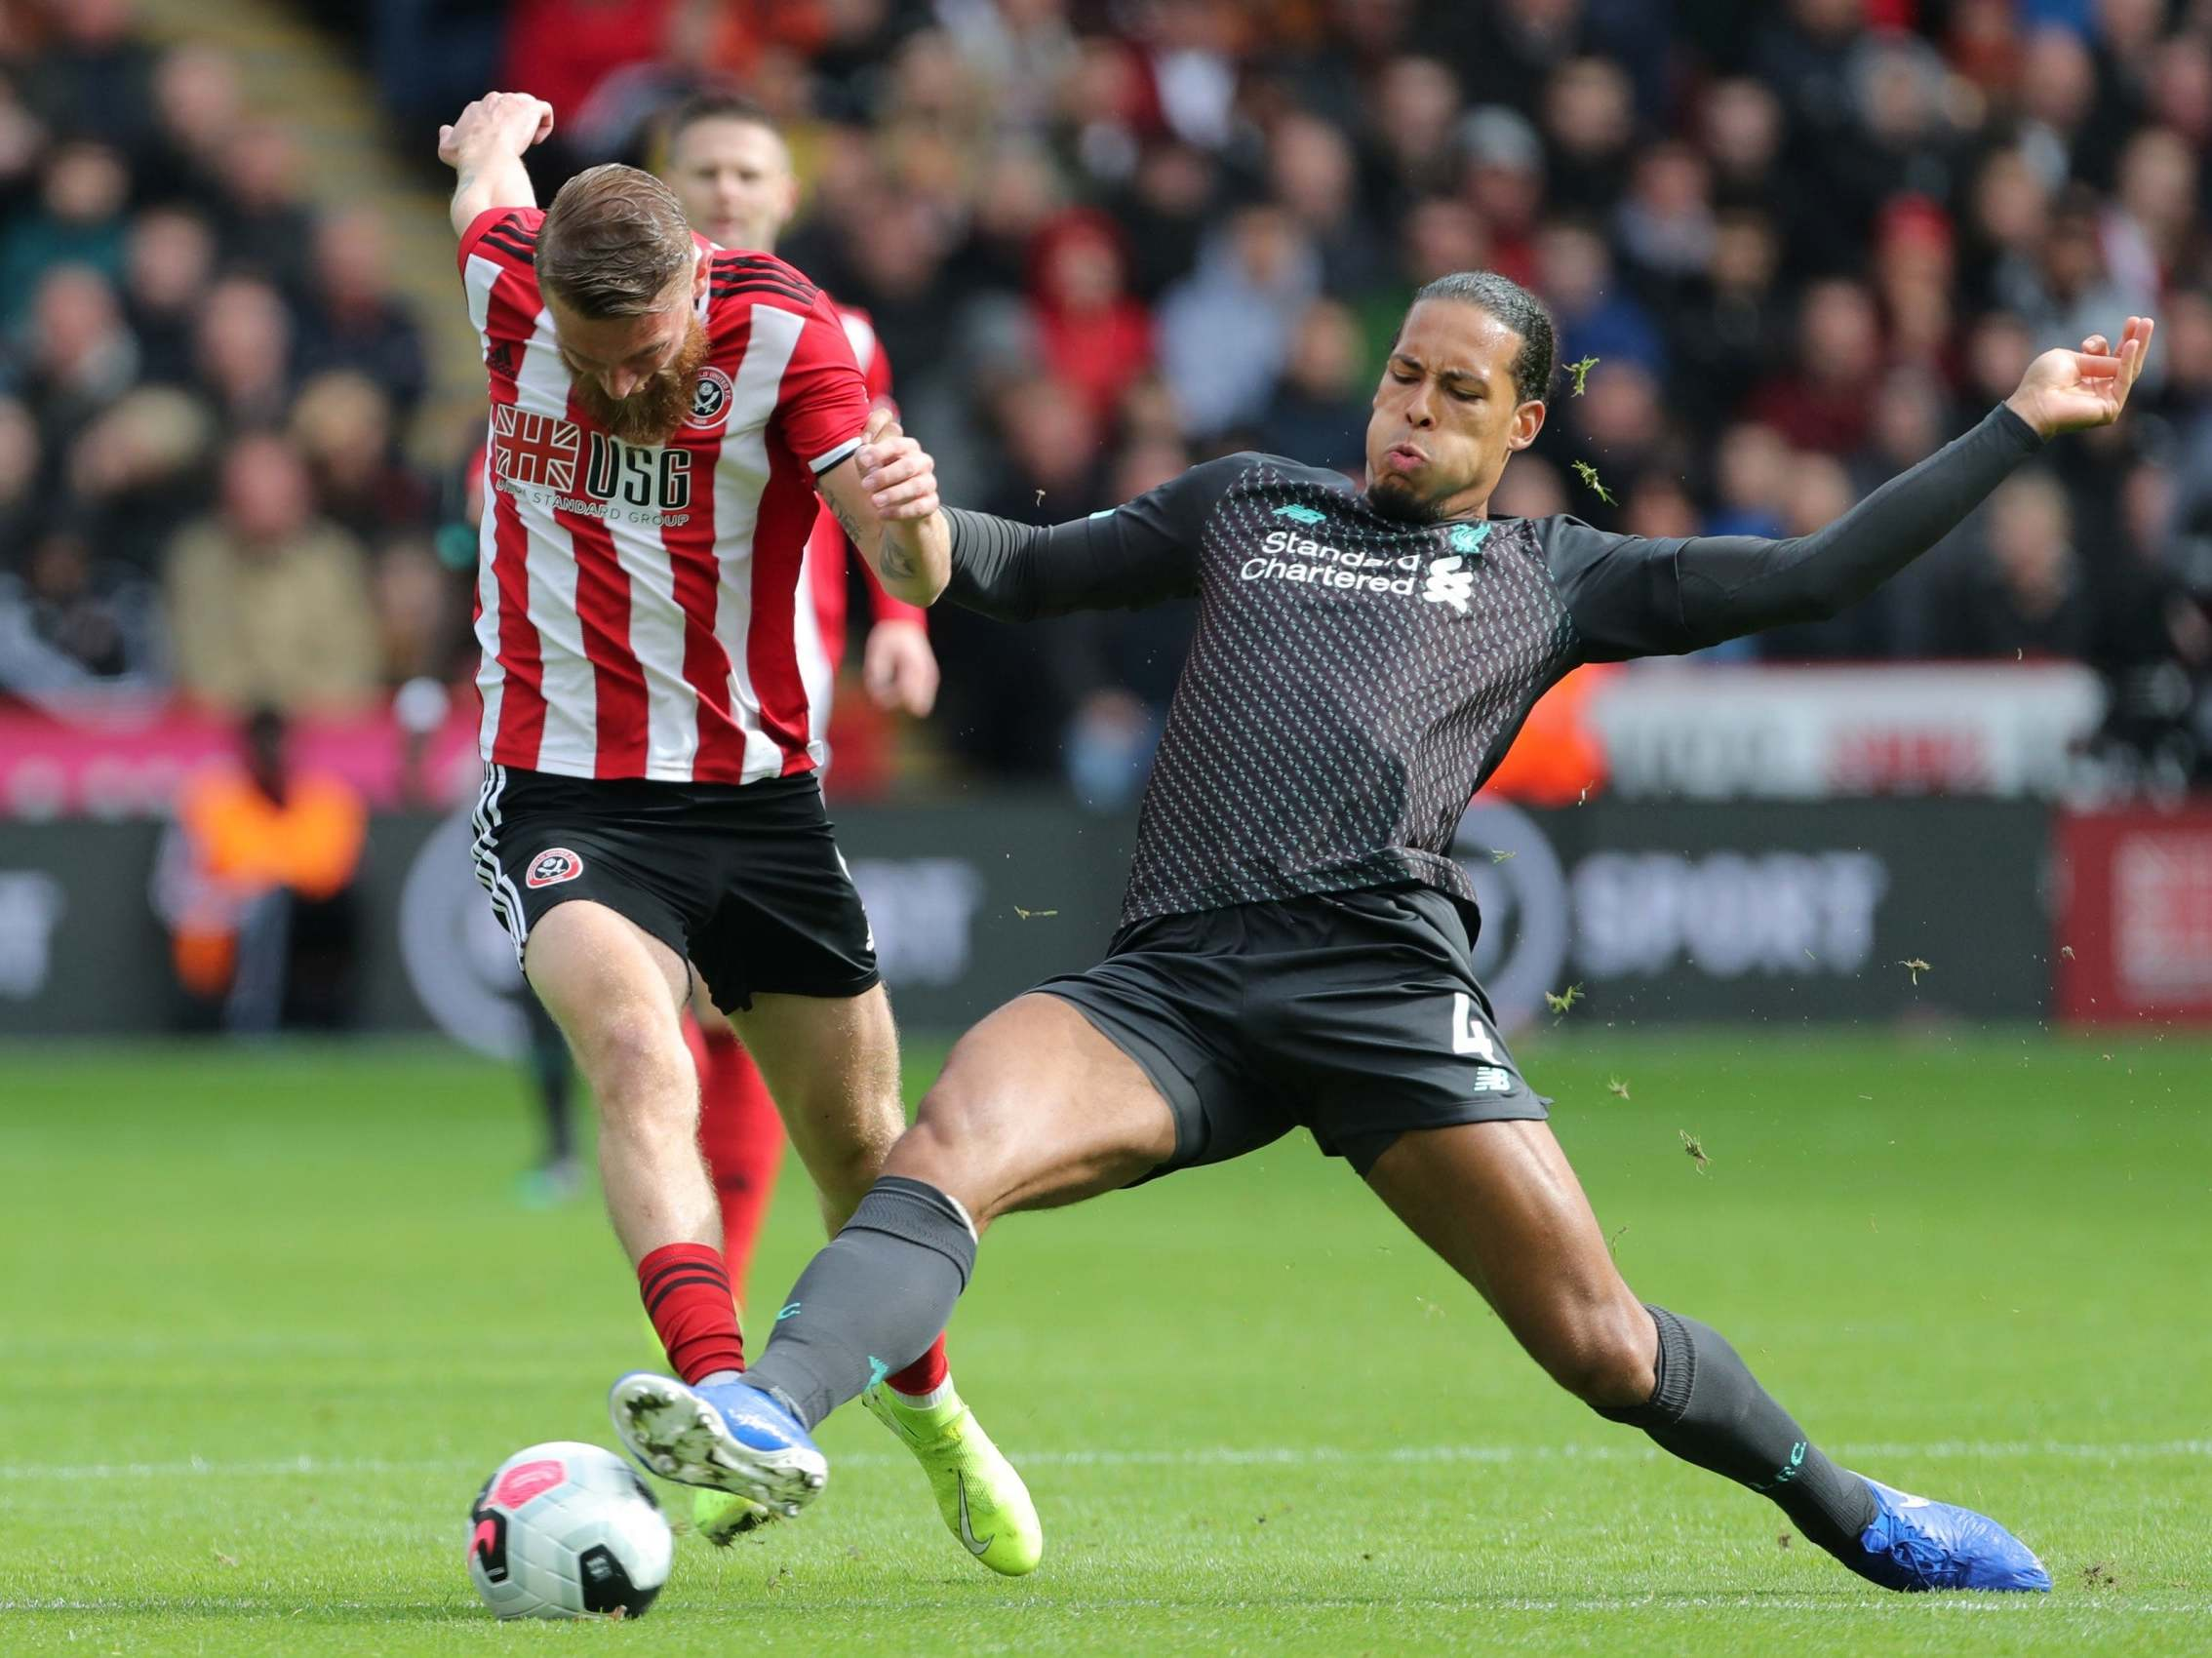 Sheffield United vs Liverpool LIVE: Latest score, goals and updates from Premier League fixture